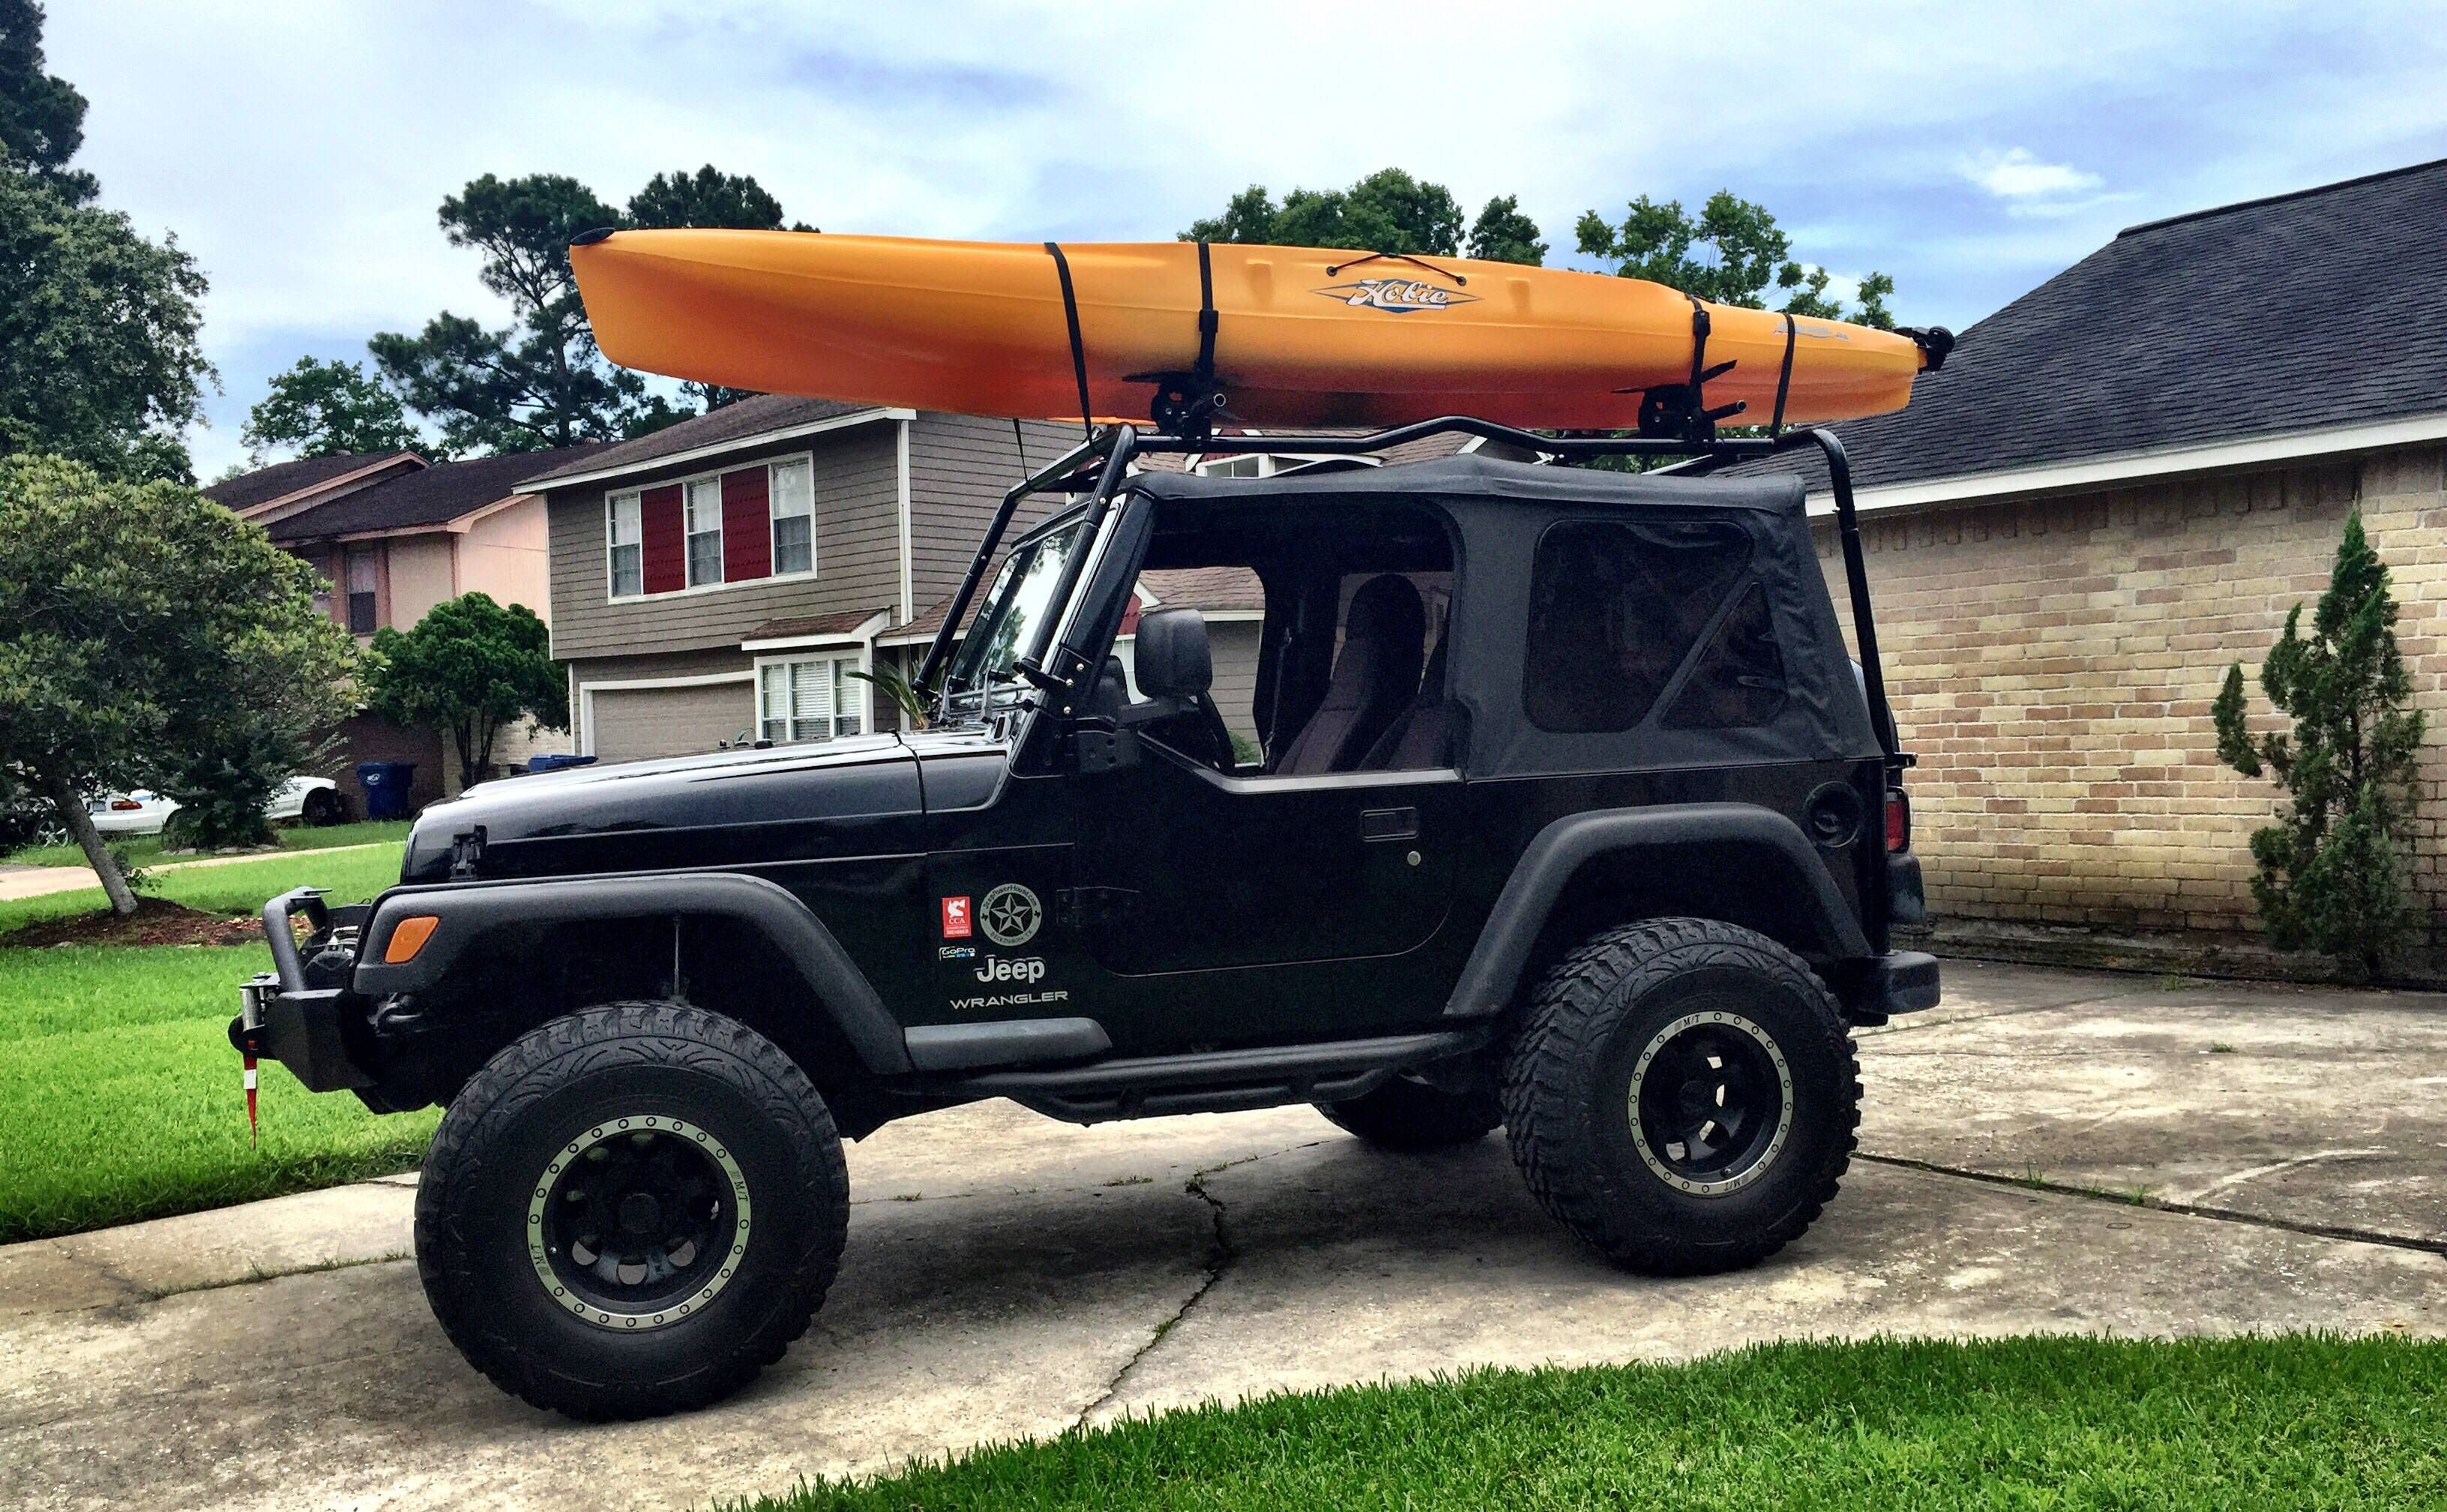 Got My New Cargo Rack To Carry The New Kayak On The 04 Tj Soft Top